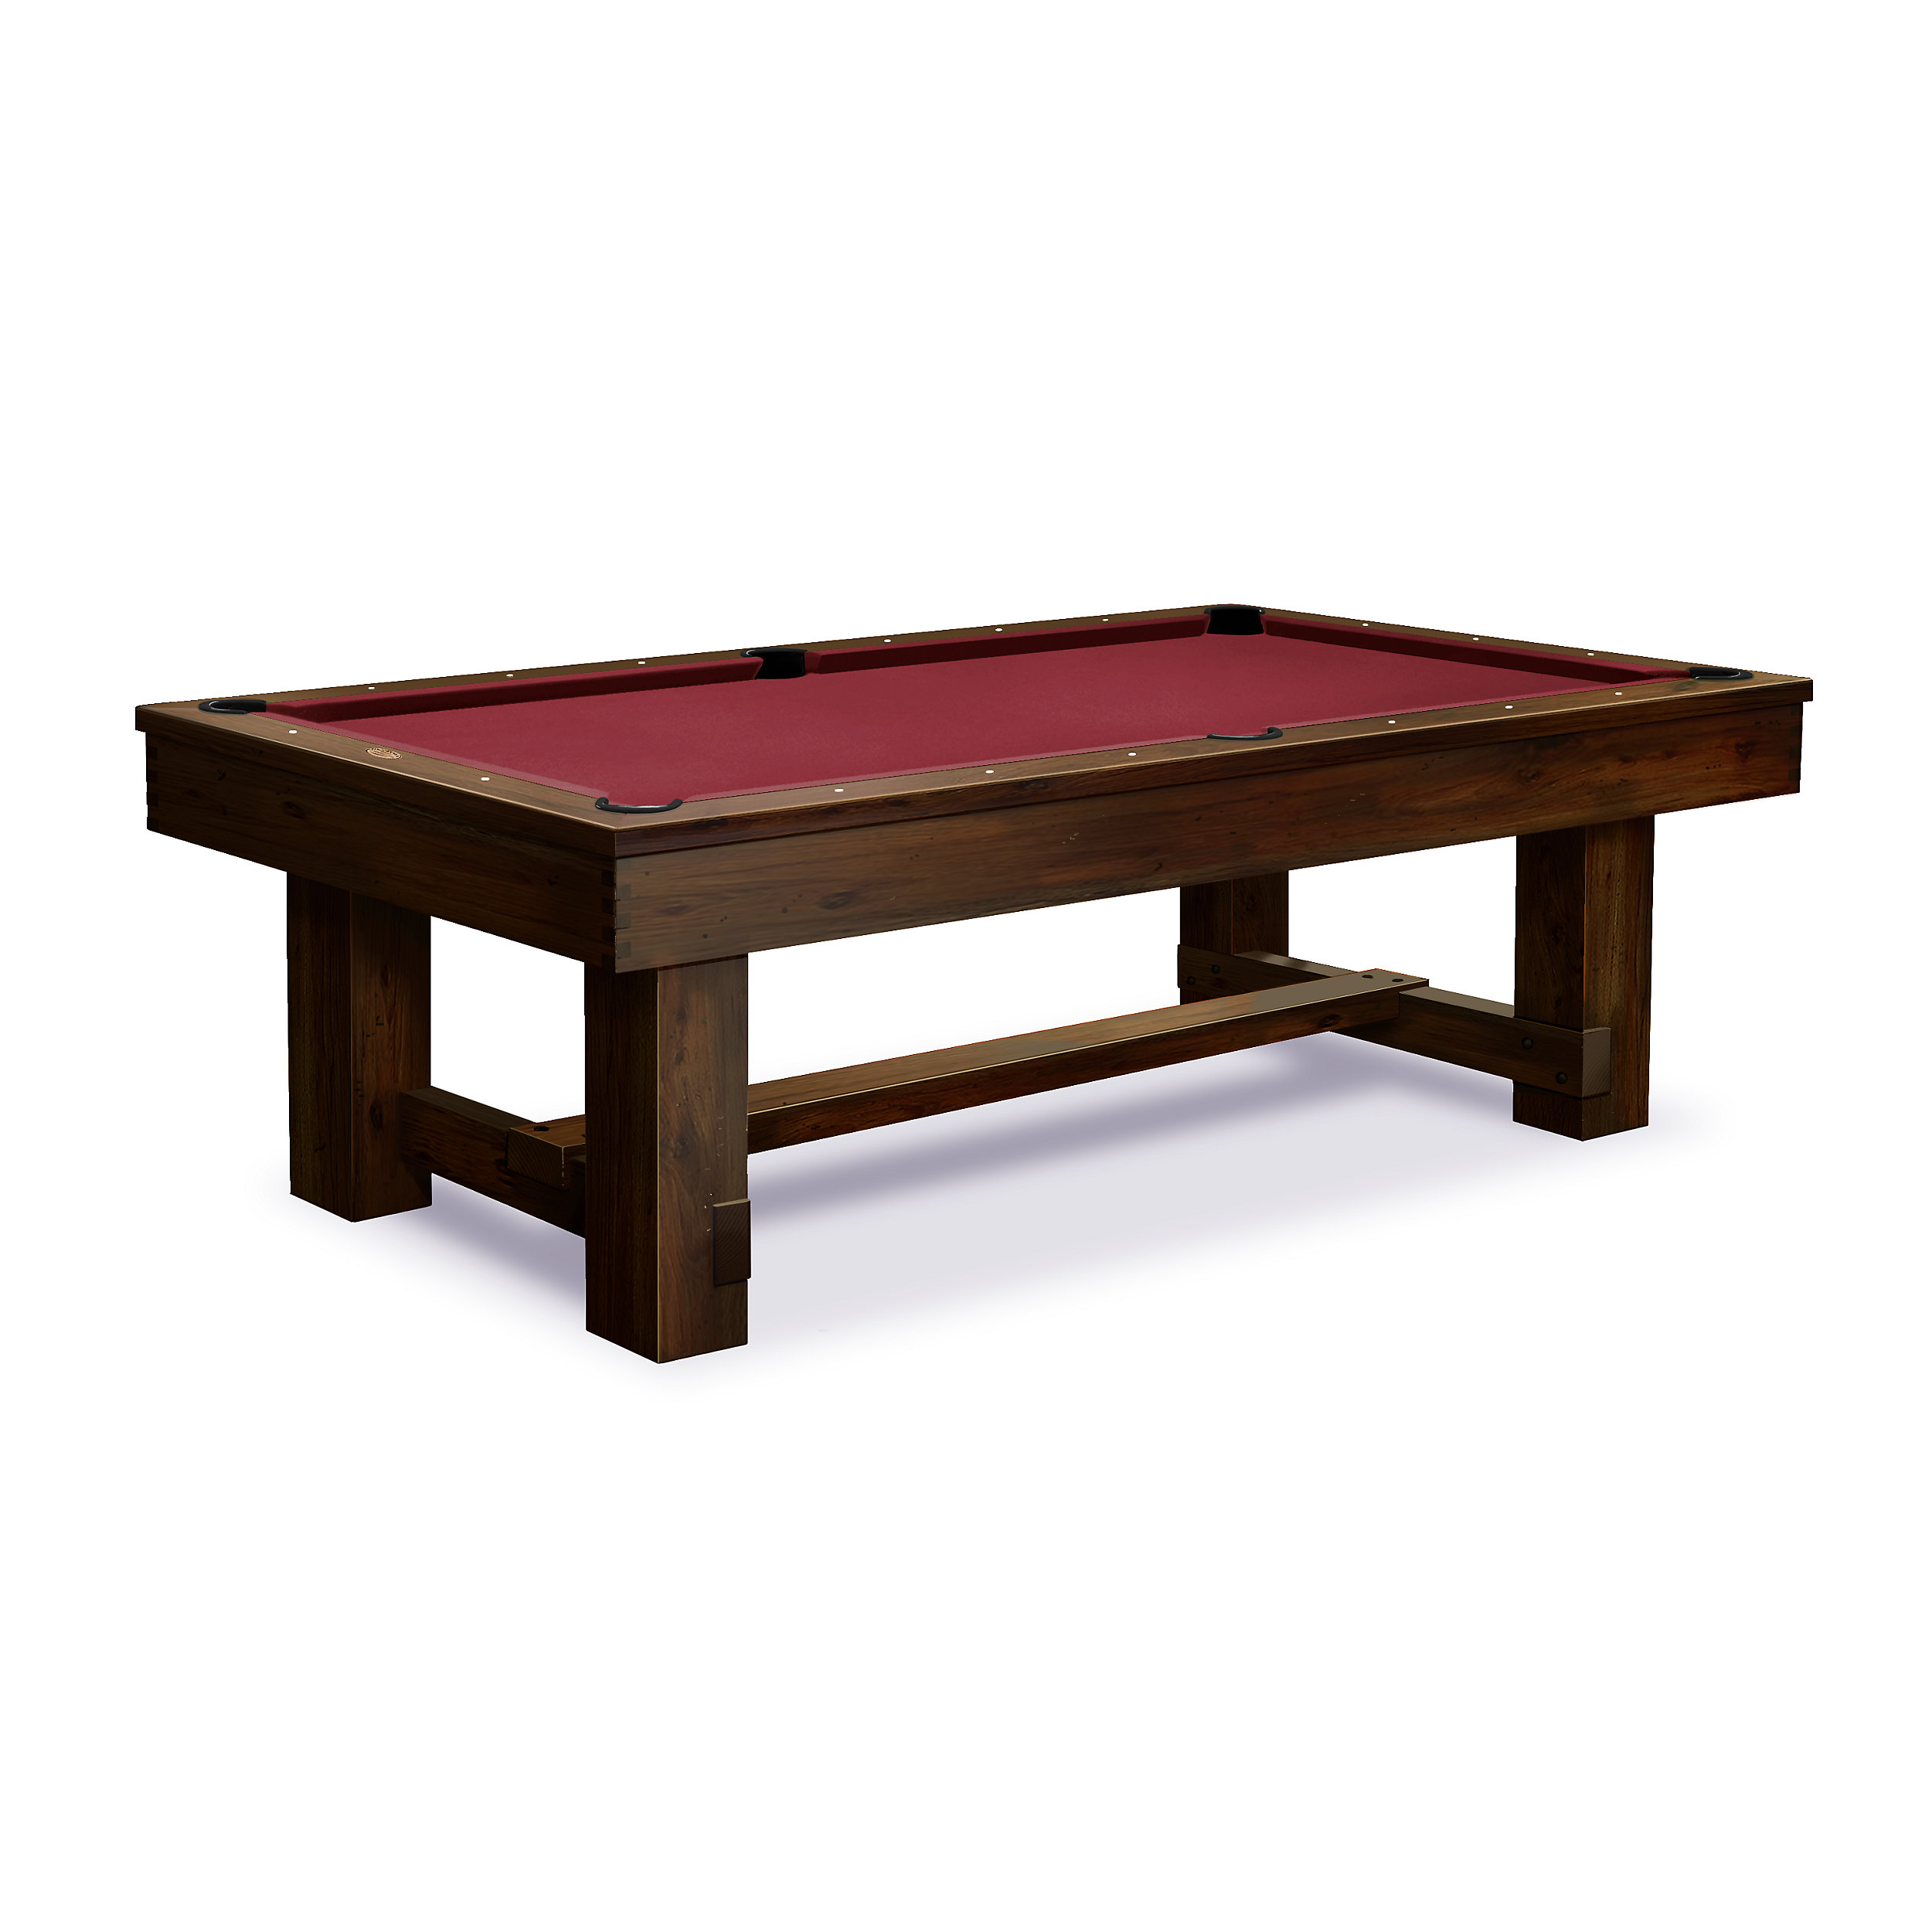 Breckenridge Pool Table Billiard Pool Tables Buy Pool Table - Pool table retailers near me